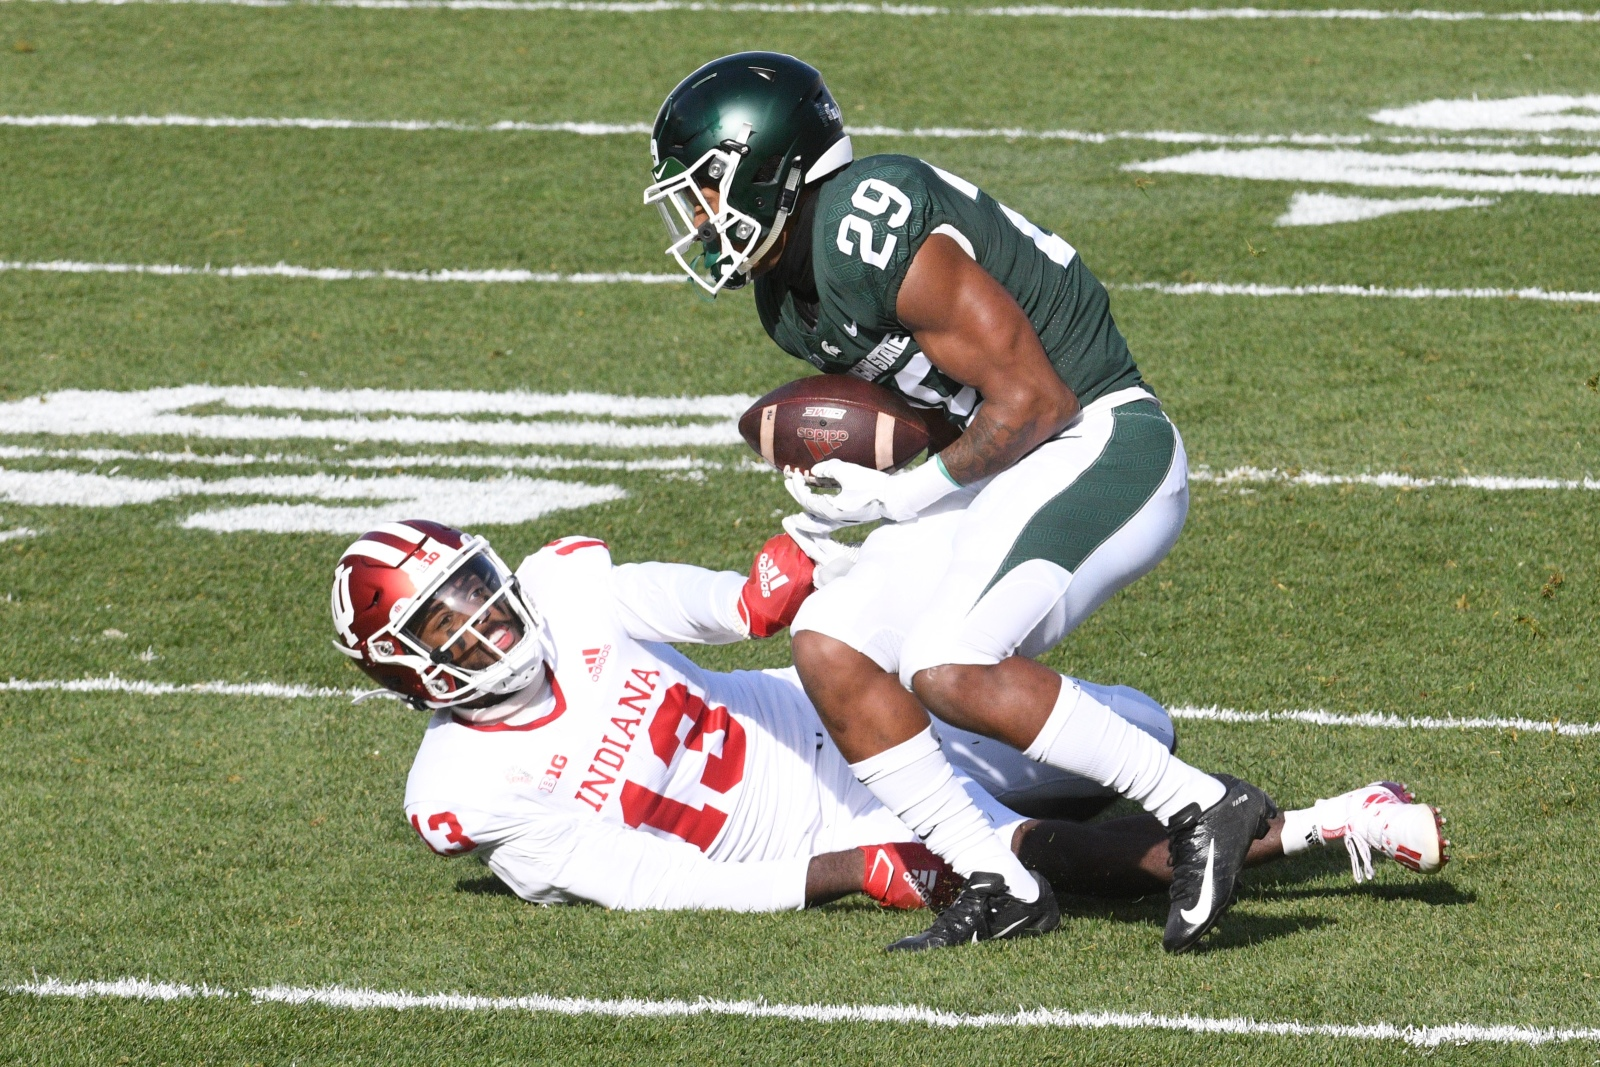 Michigan State Football 3 Hot Takes From Loss To Indiana In Week 11 Miss dig 811 uses cisco customer journey platform to centralize its. https spartanavenue com 2020 11 16 michigan state football hot takes loss indiana 2020